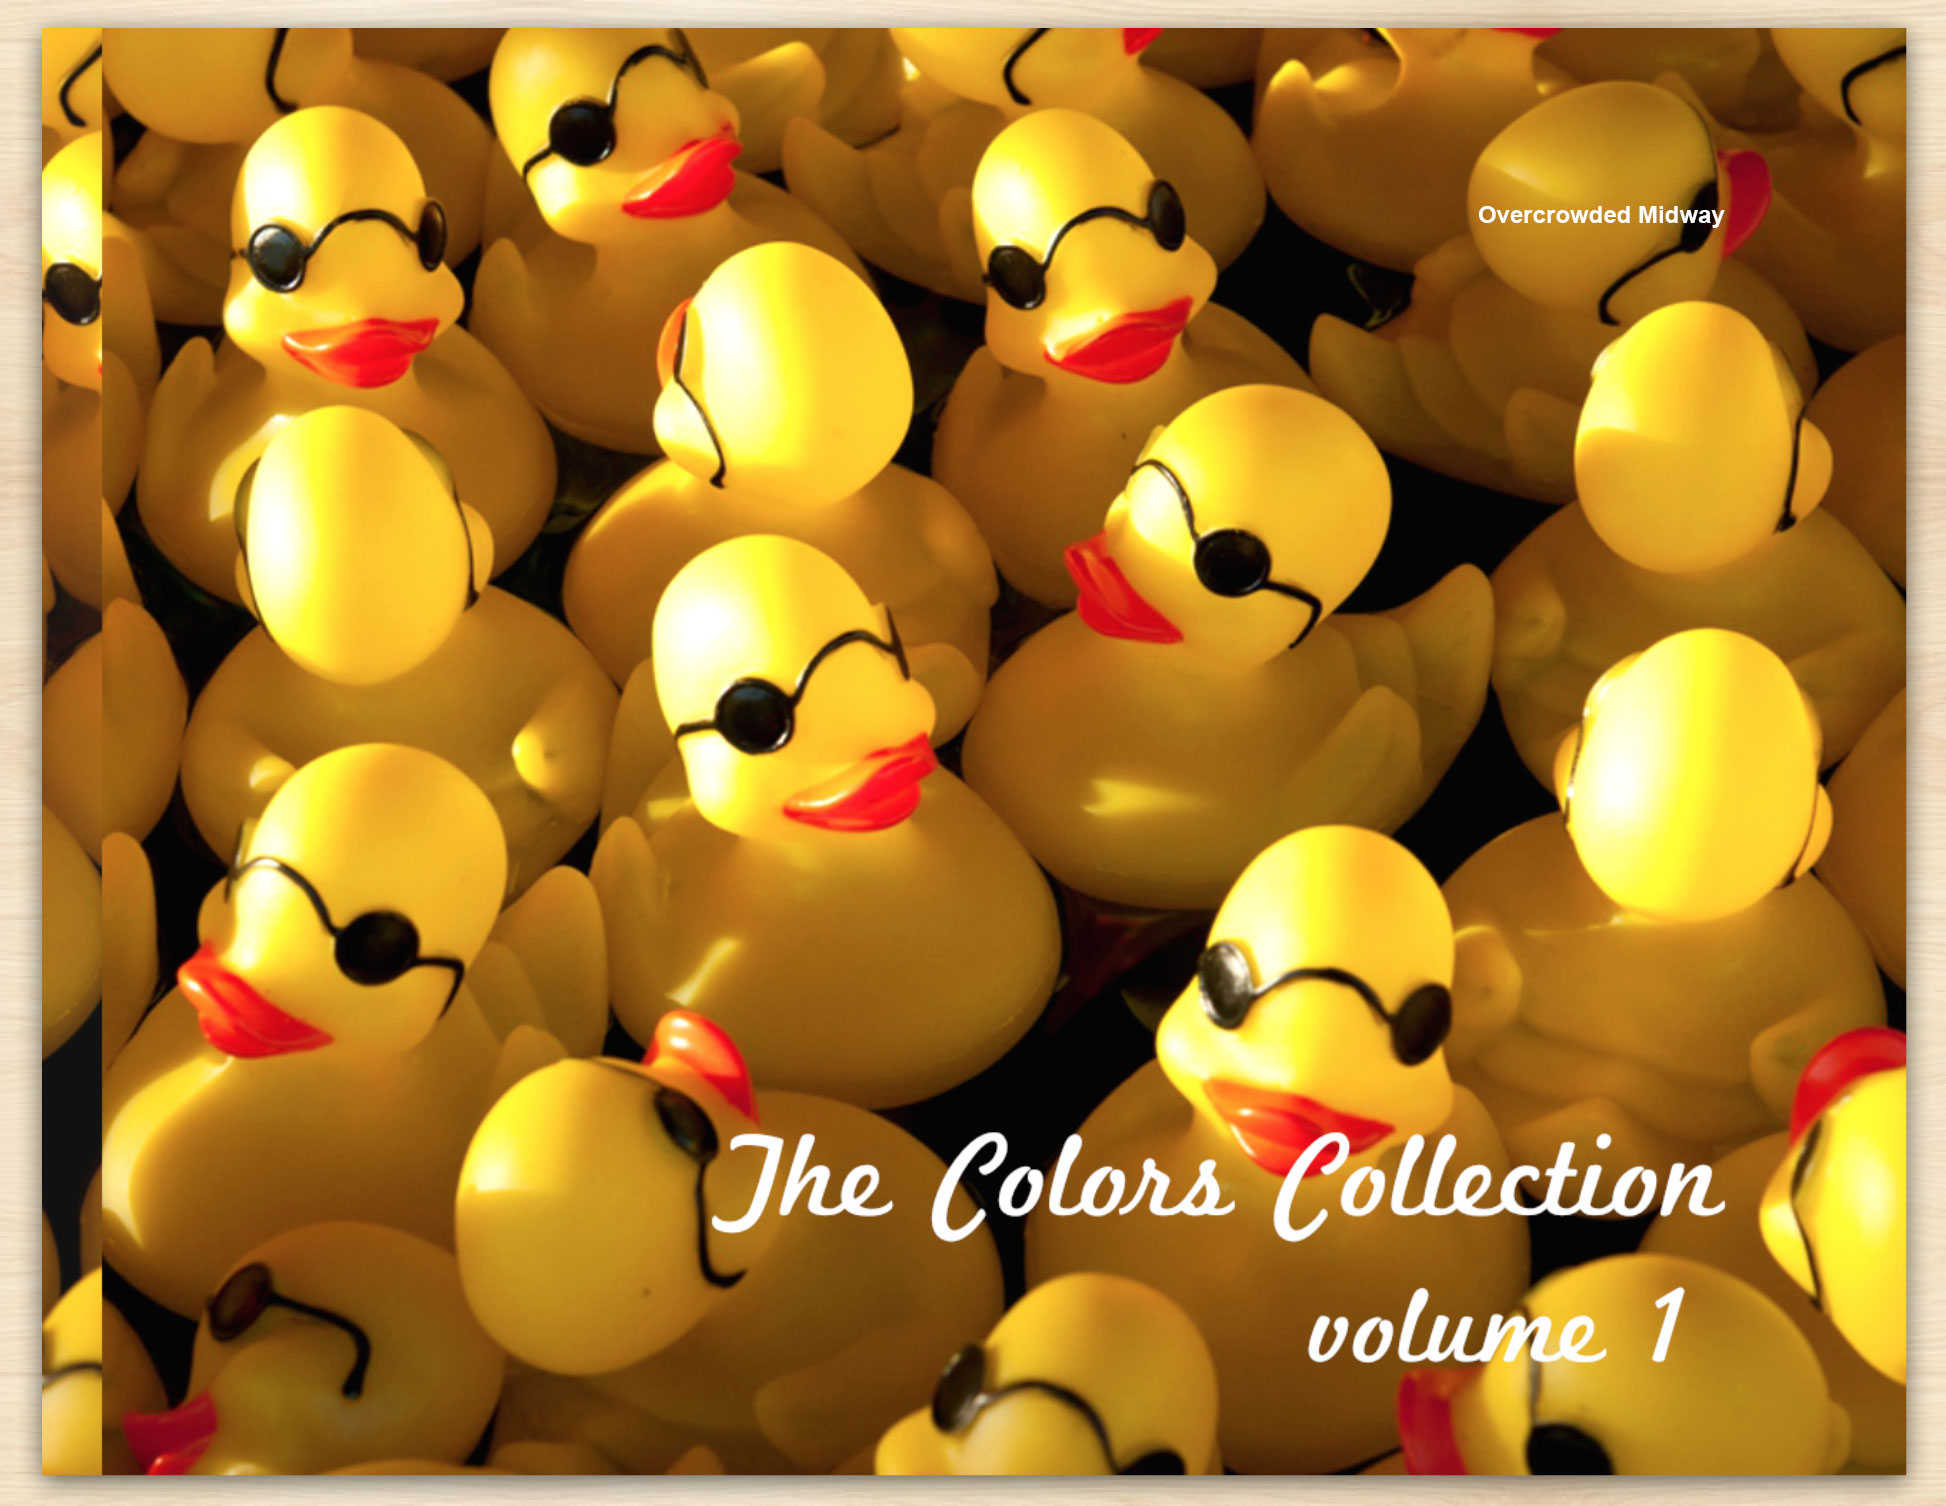 Overcrowded-Midway-The-Colors-Collection-Volume-1-by-Debra-Fisher-Goldstein